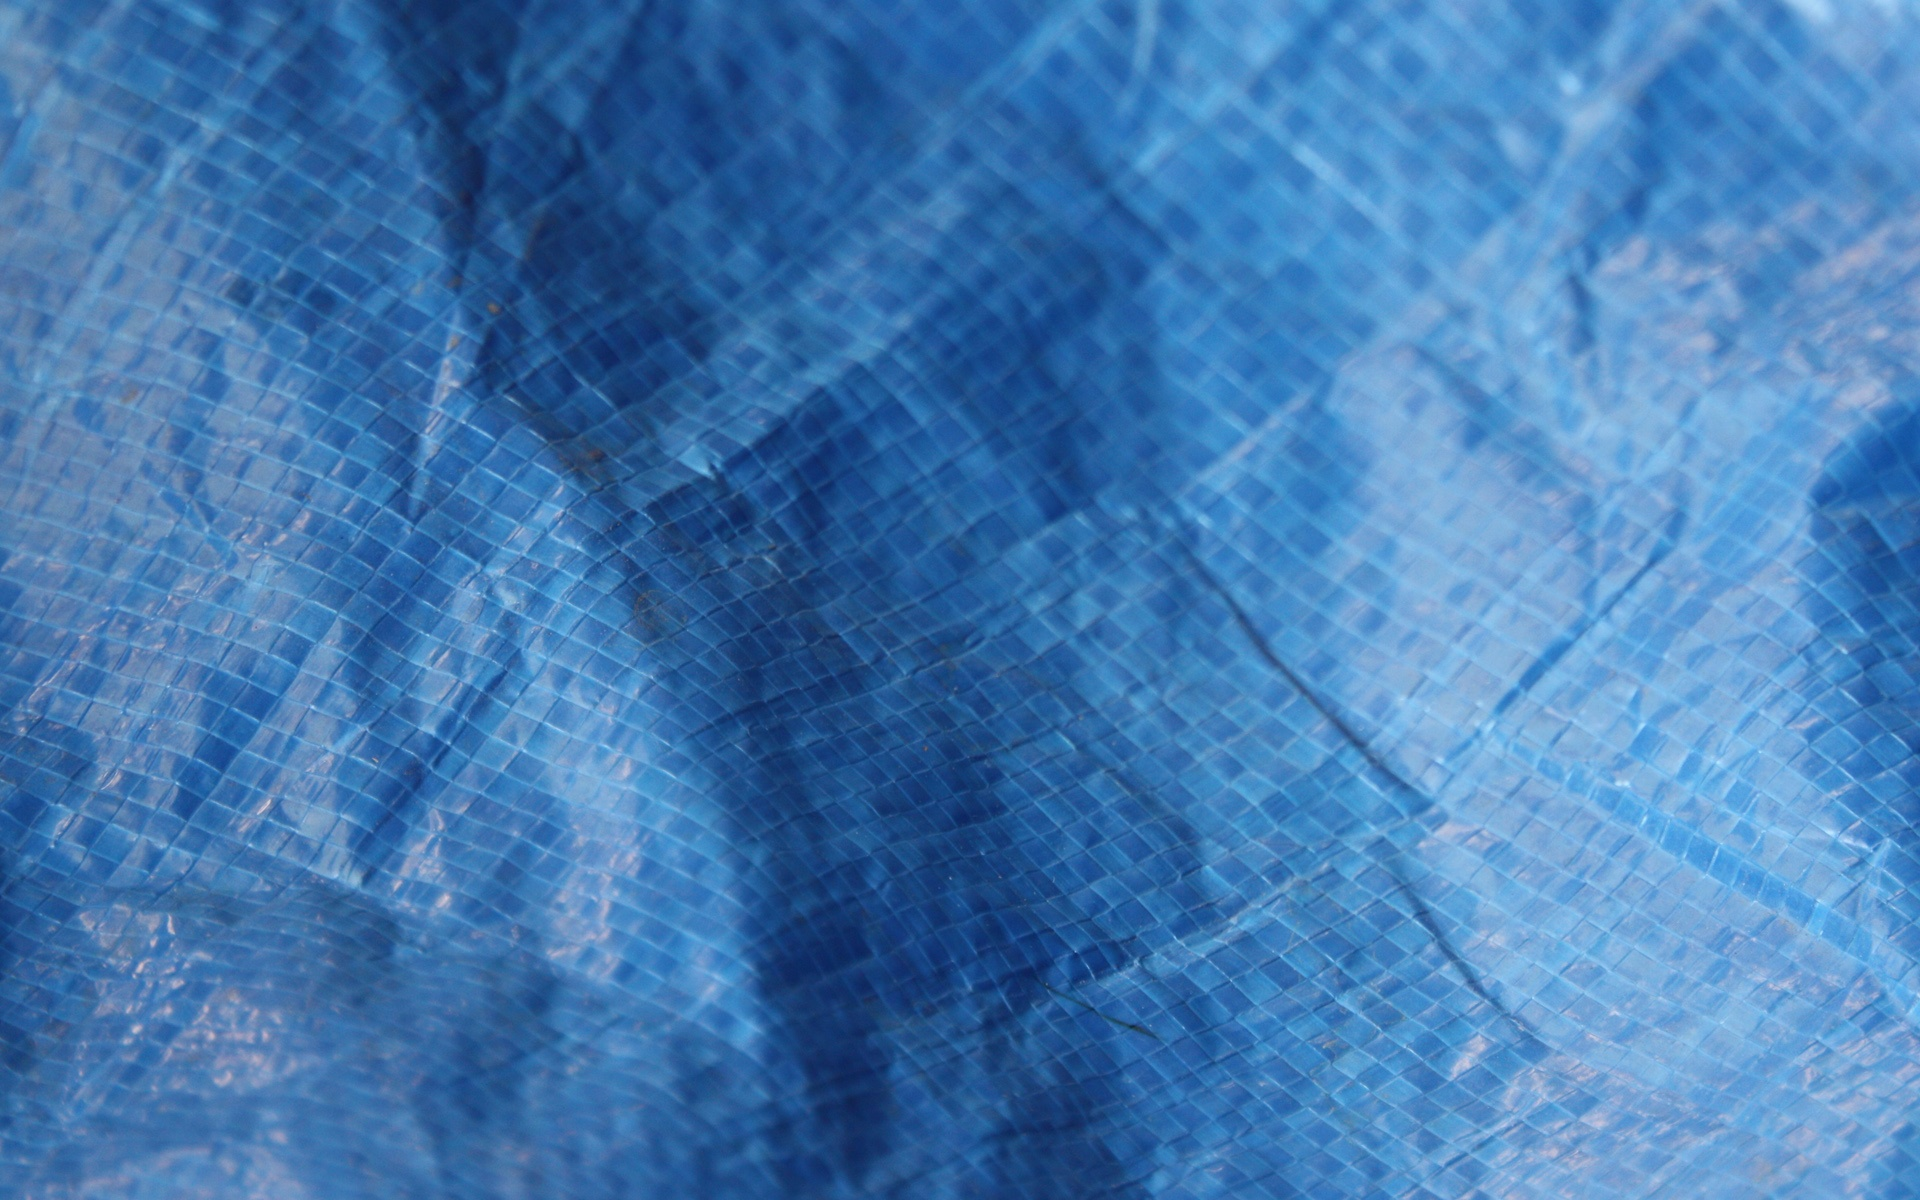 texture skin alligator blue plastic freewallpapers wallpapers 1920x1200